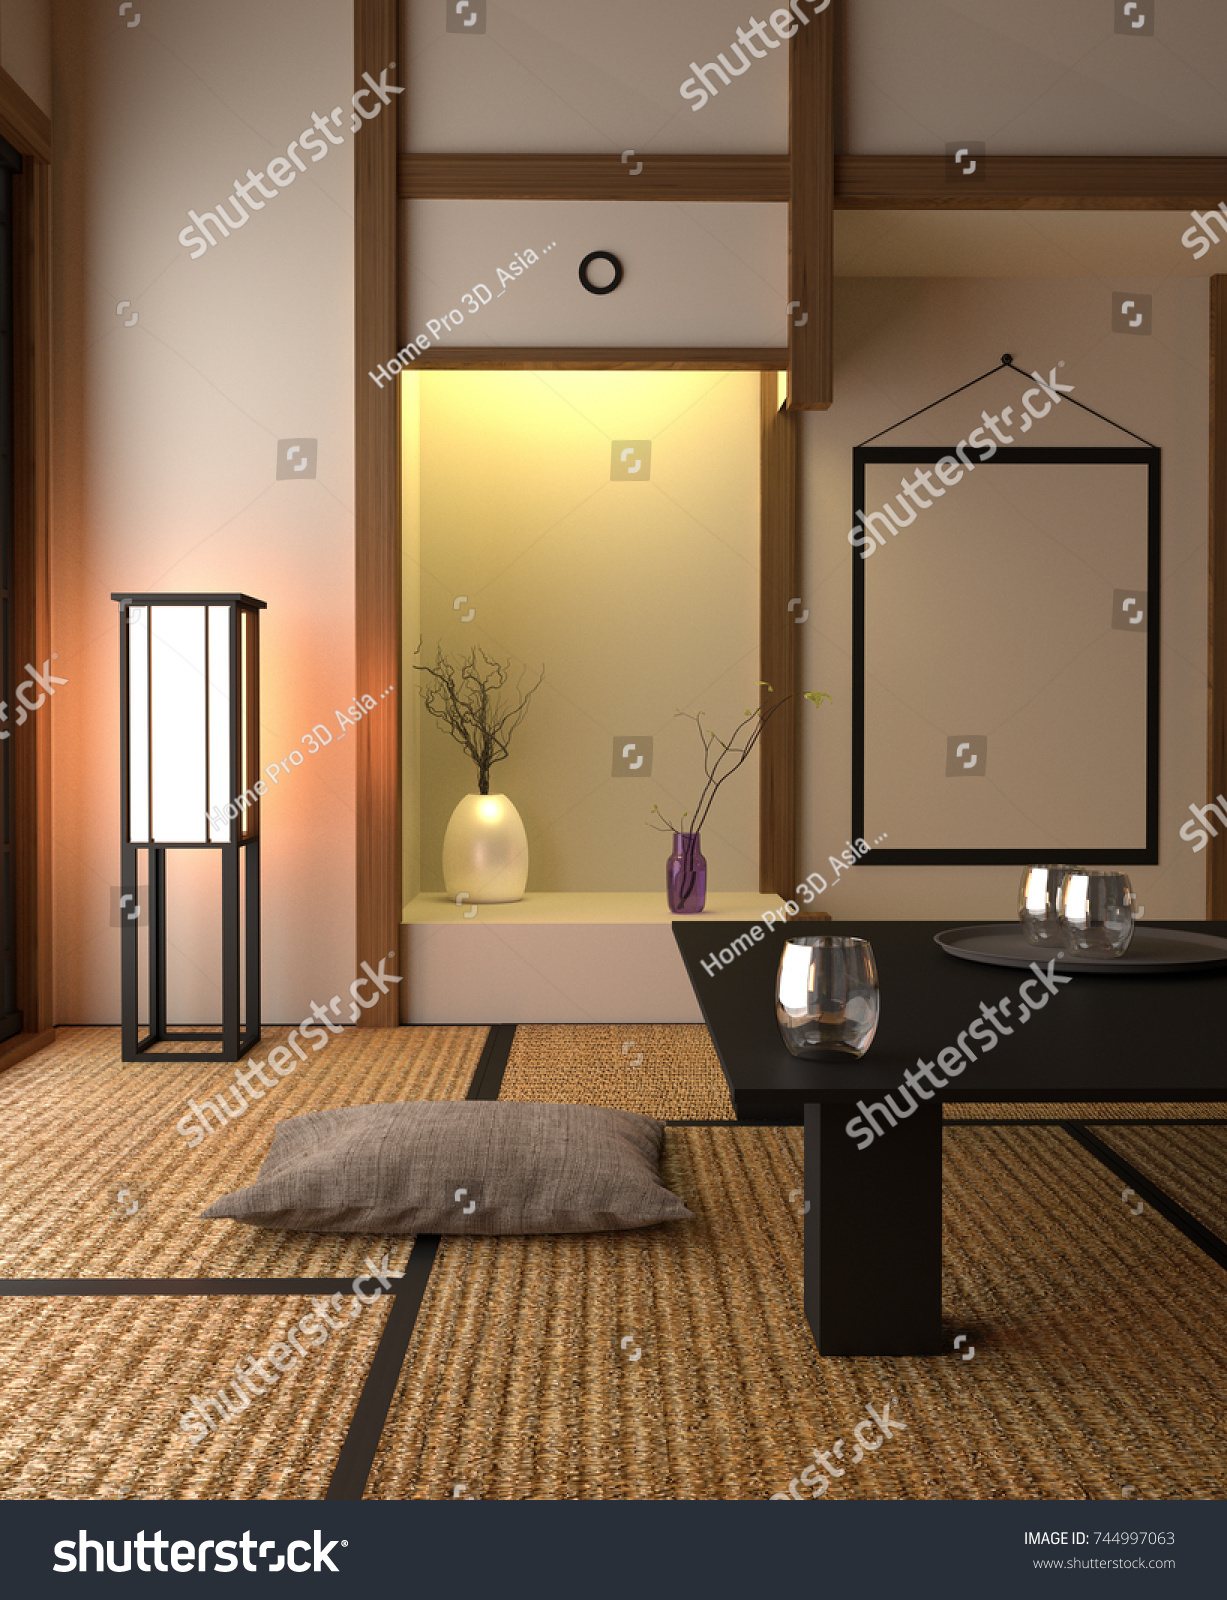 Japanese Style Interior Design   Living Room. 3D Rendering